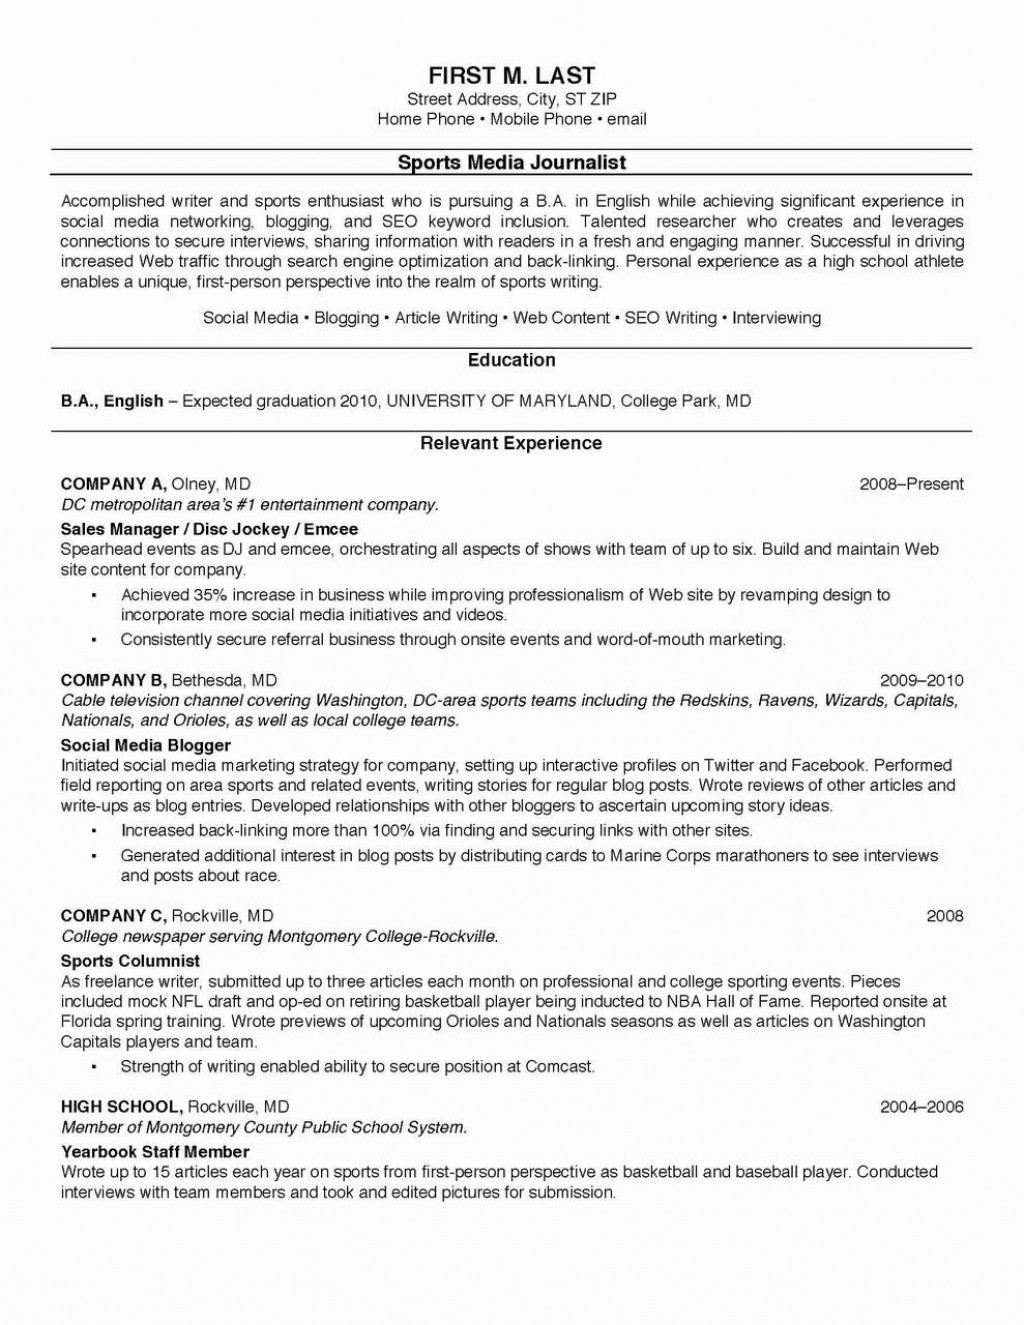 017 Free Essays What To Put On College Resume Inspirational Persuasive Essay Online For Organ Donation Plete Students Amazing Copy The Constitution Read Large